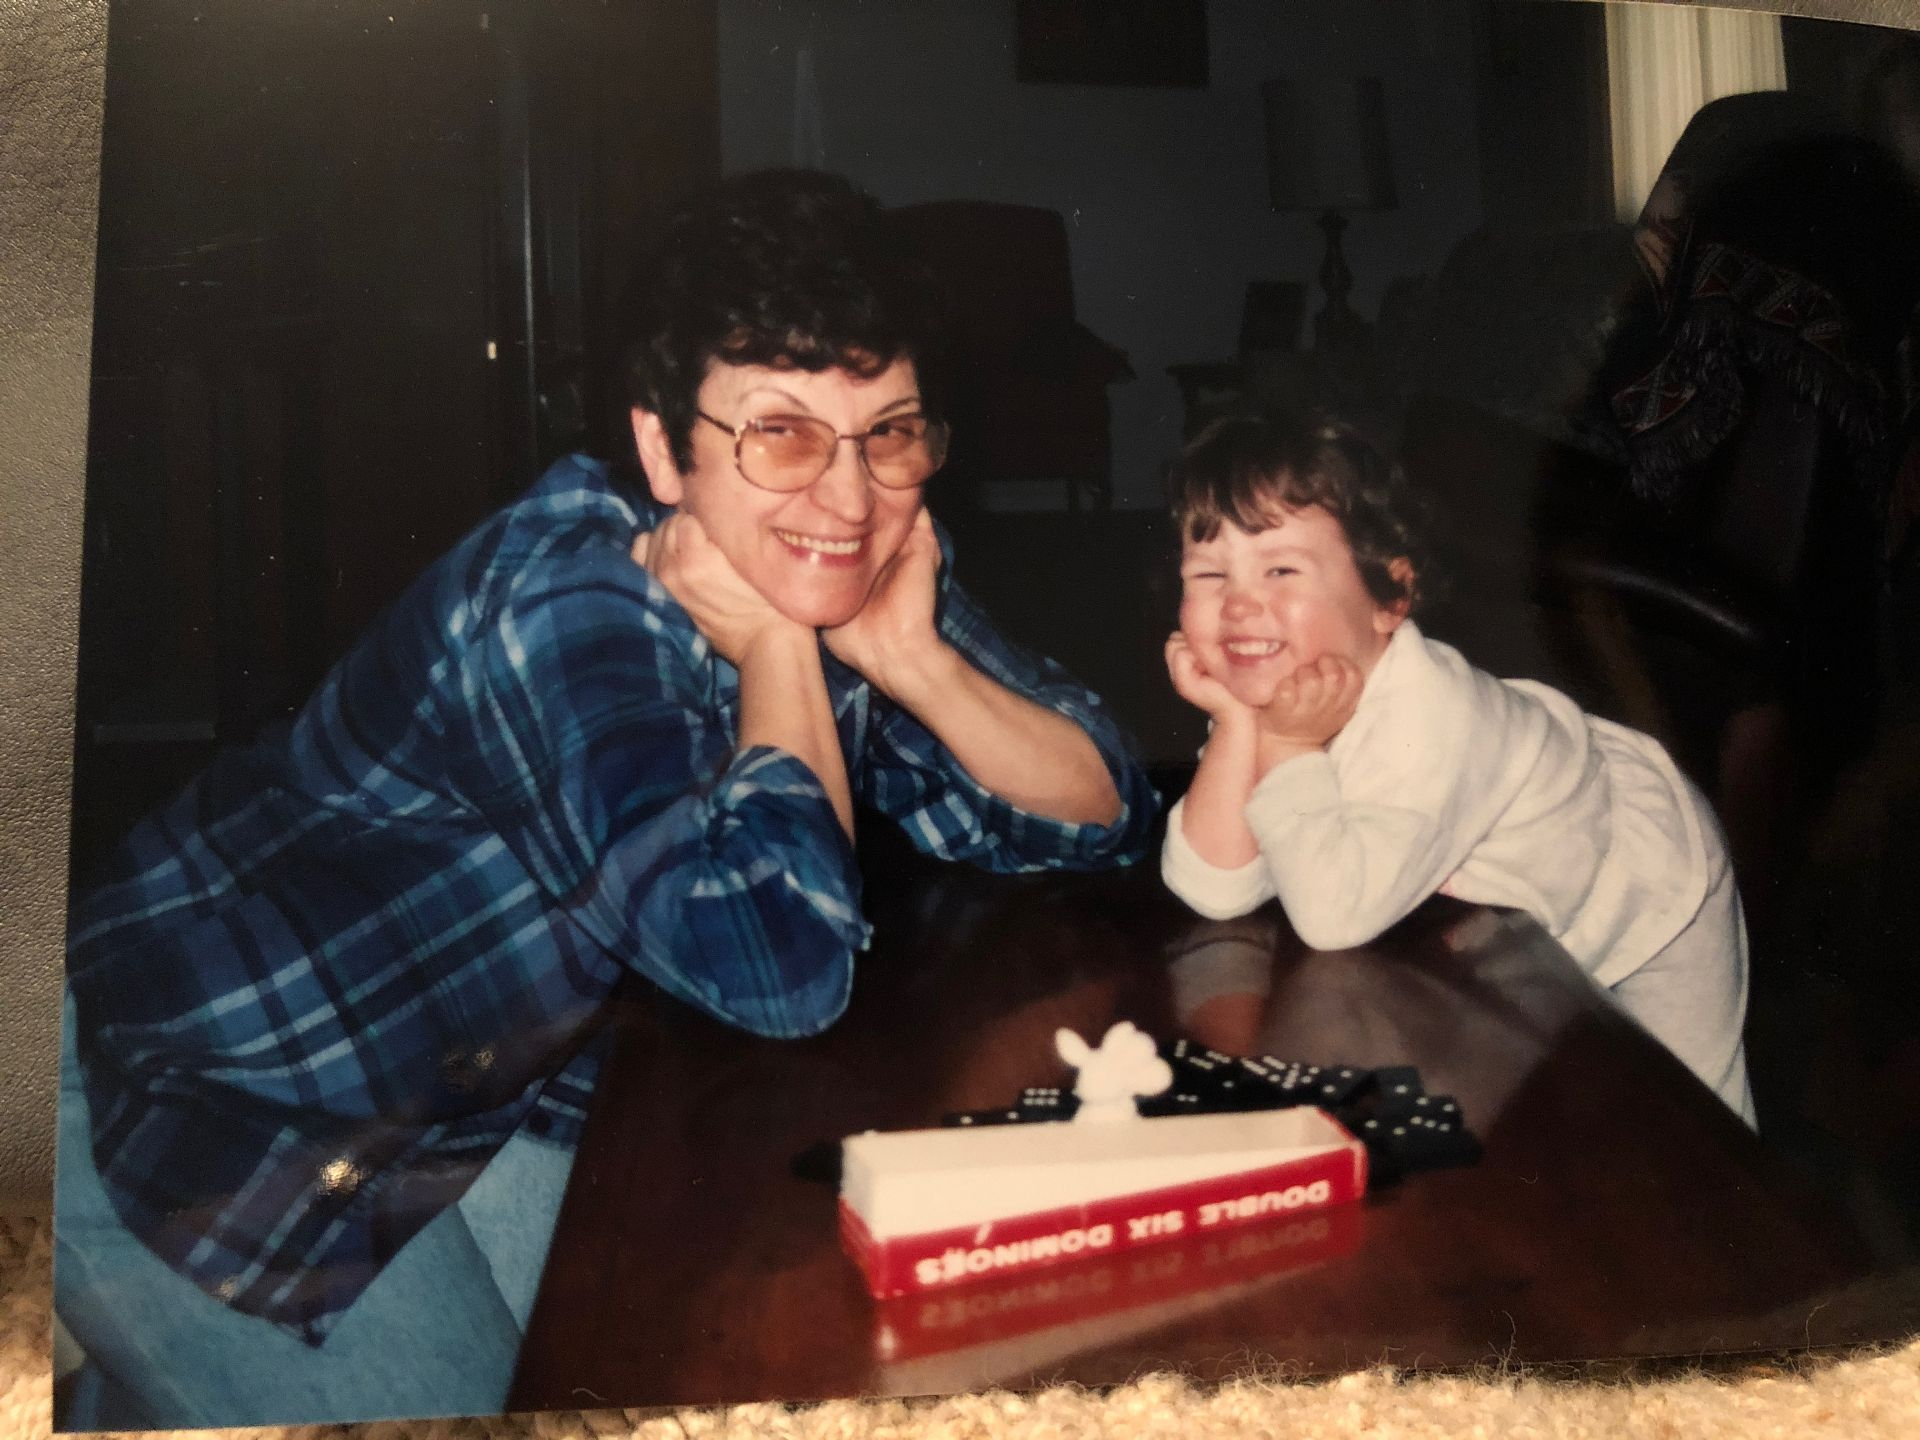 20 Life Lessons from my Nana - Happy Birthday, Nana!